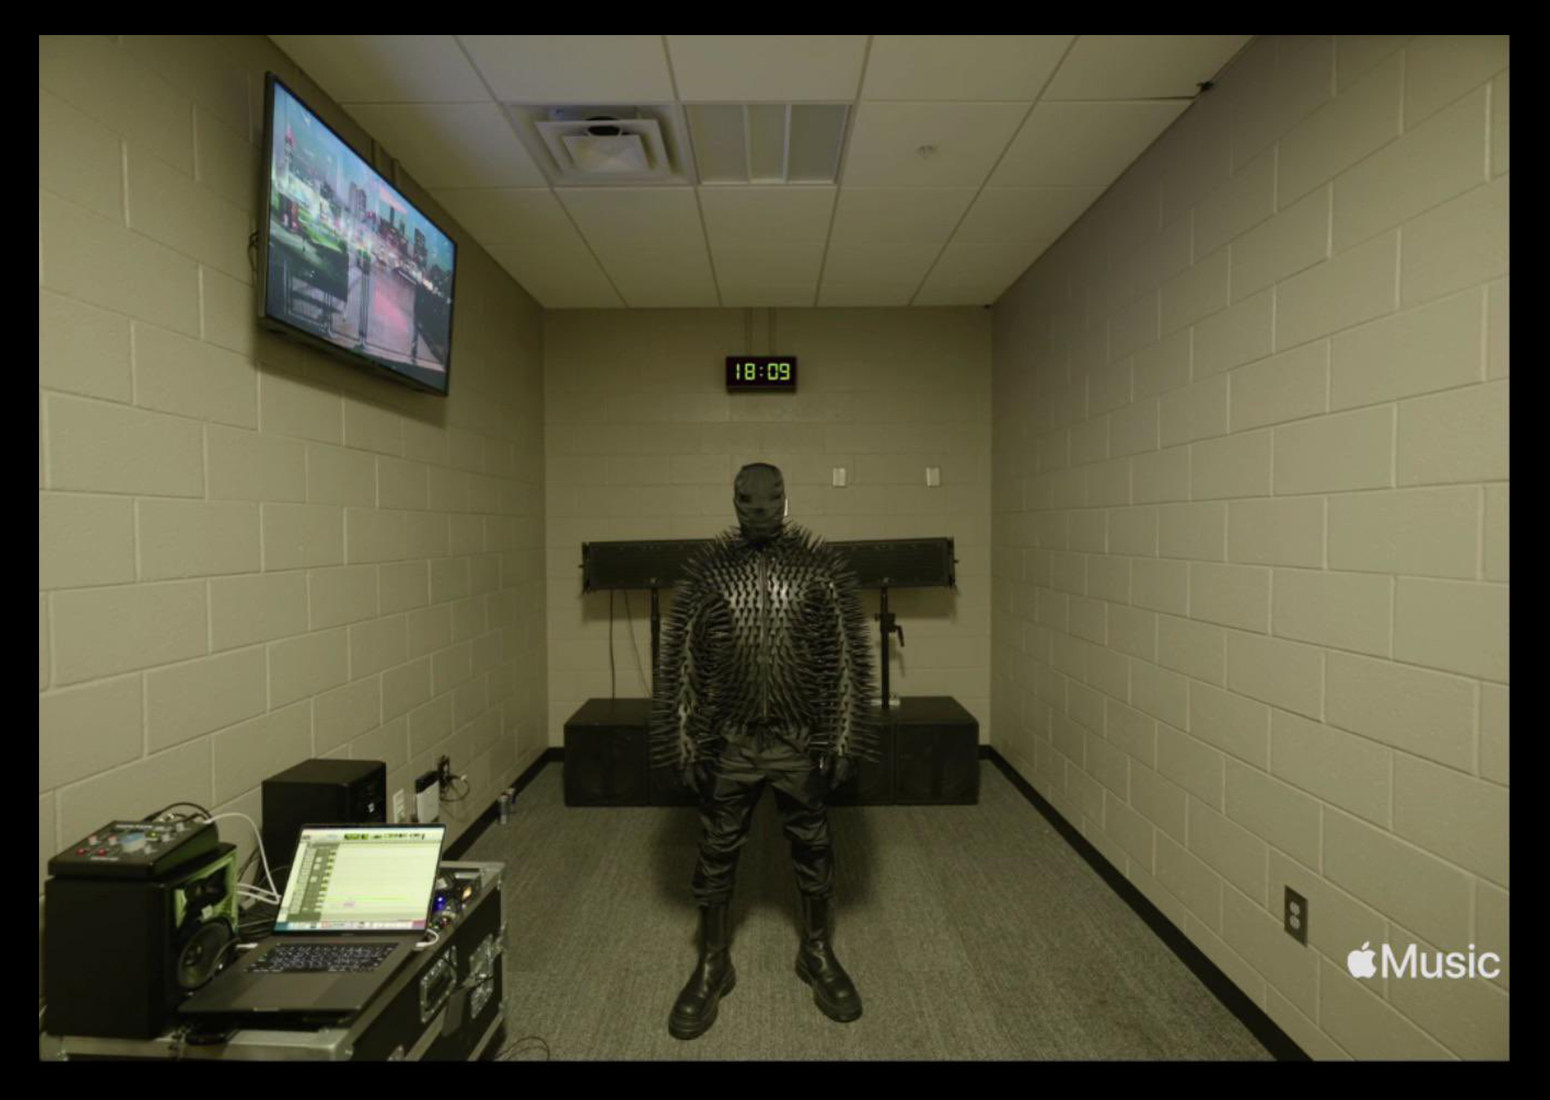 Kanye wears a spike-covered shirt, pants, boots, and a full face covering, standing in a concrete-lined room